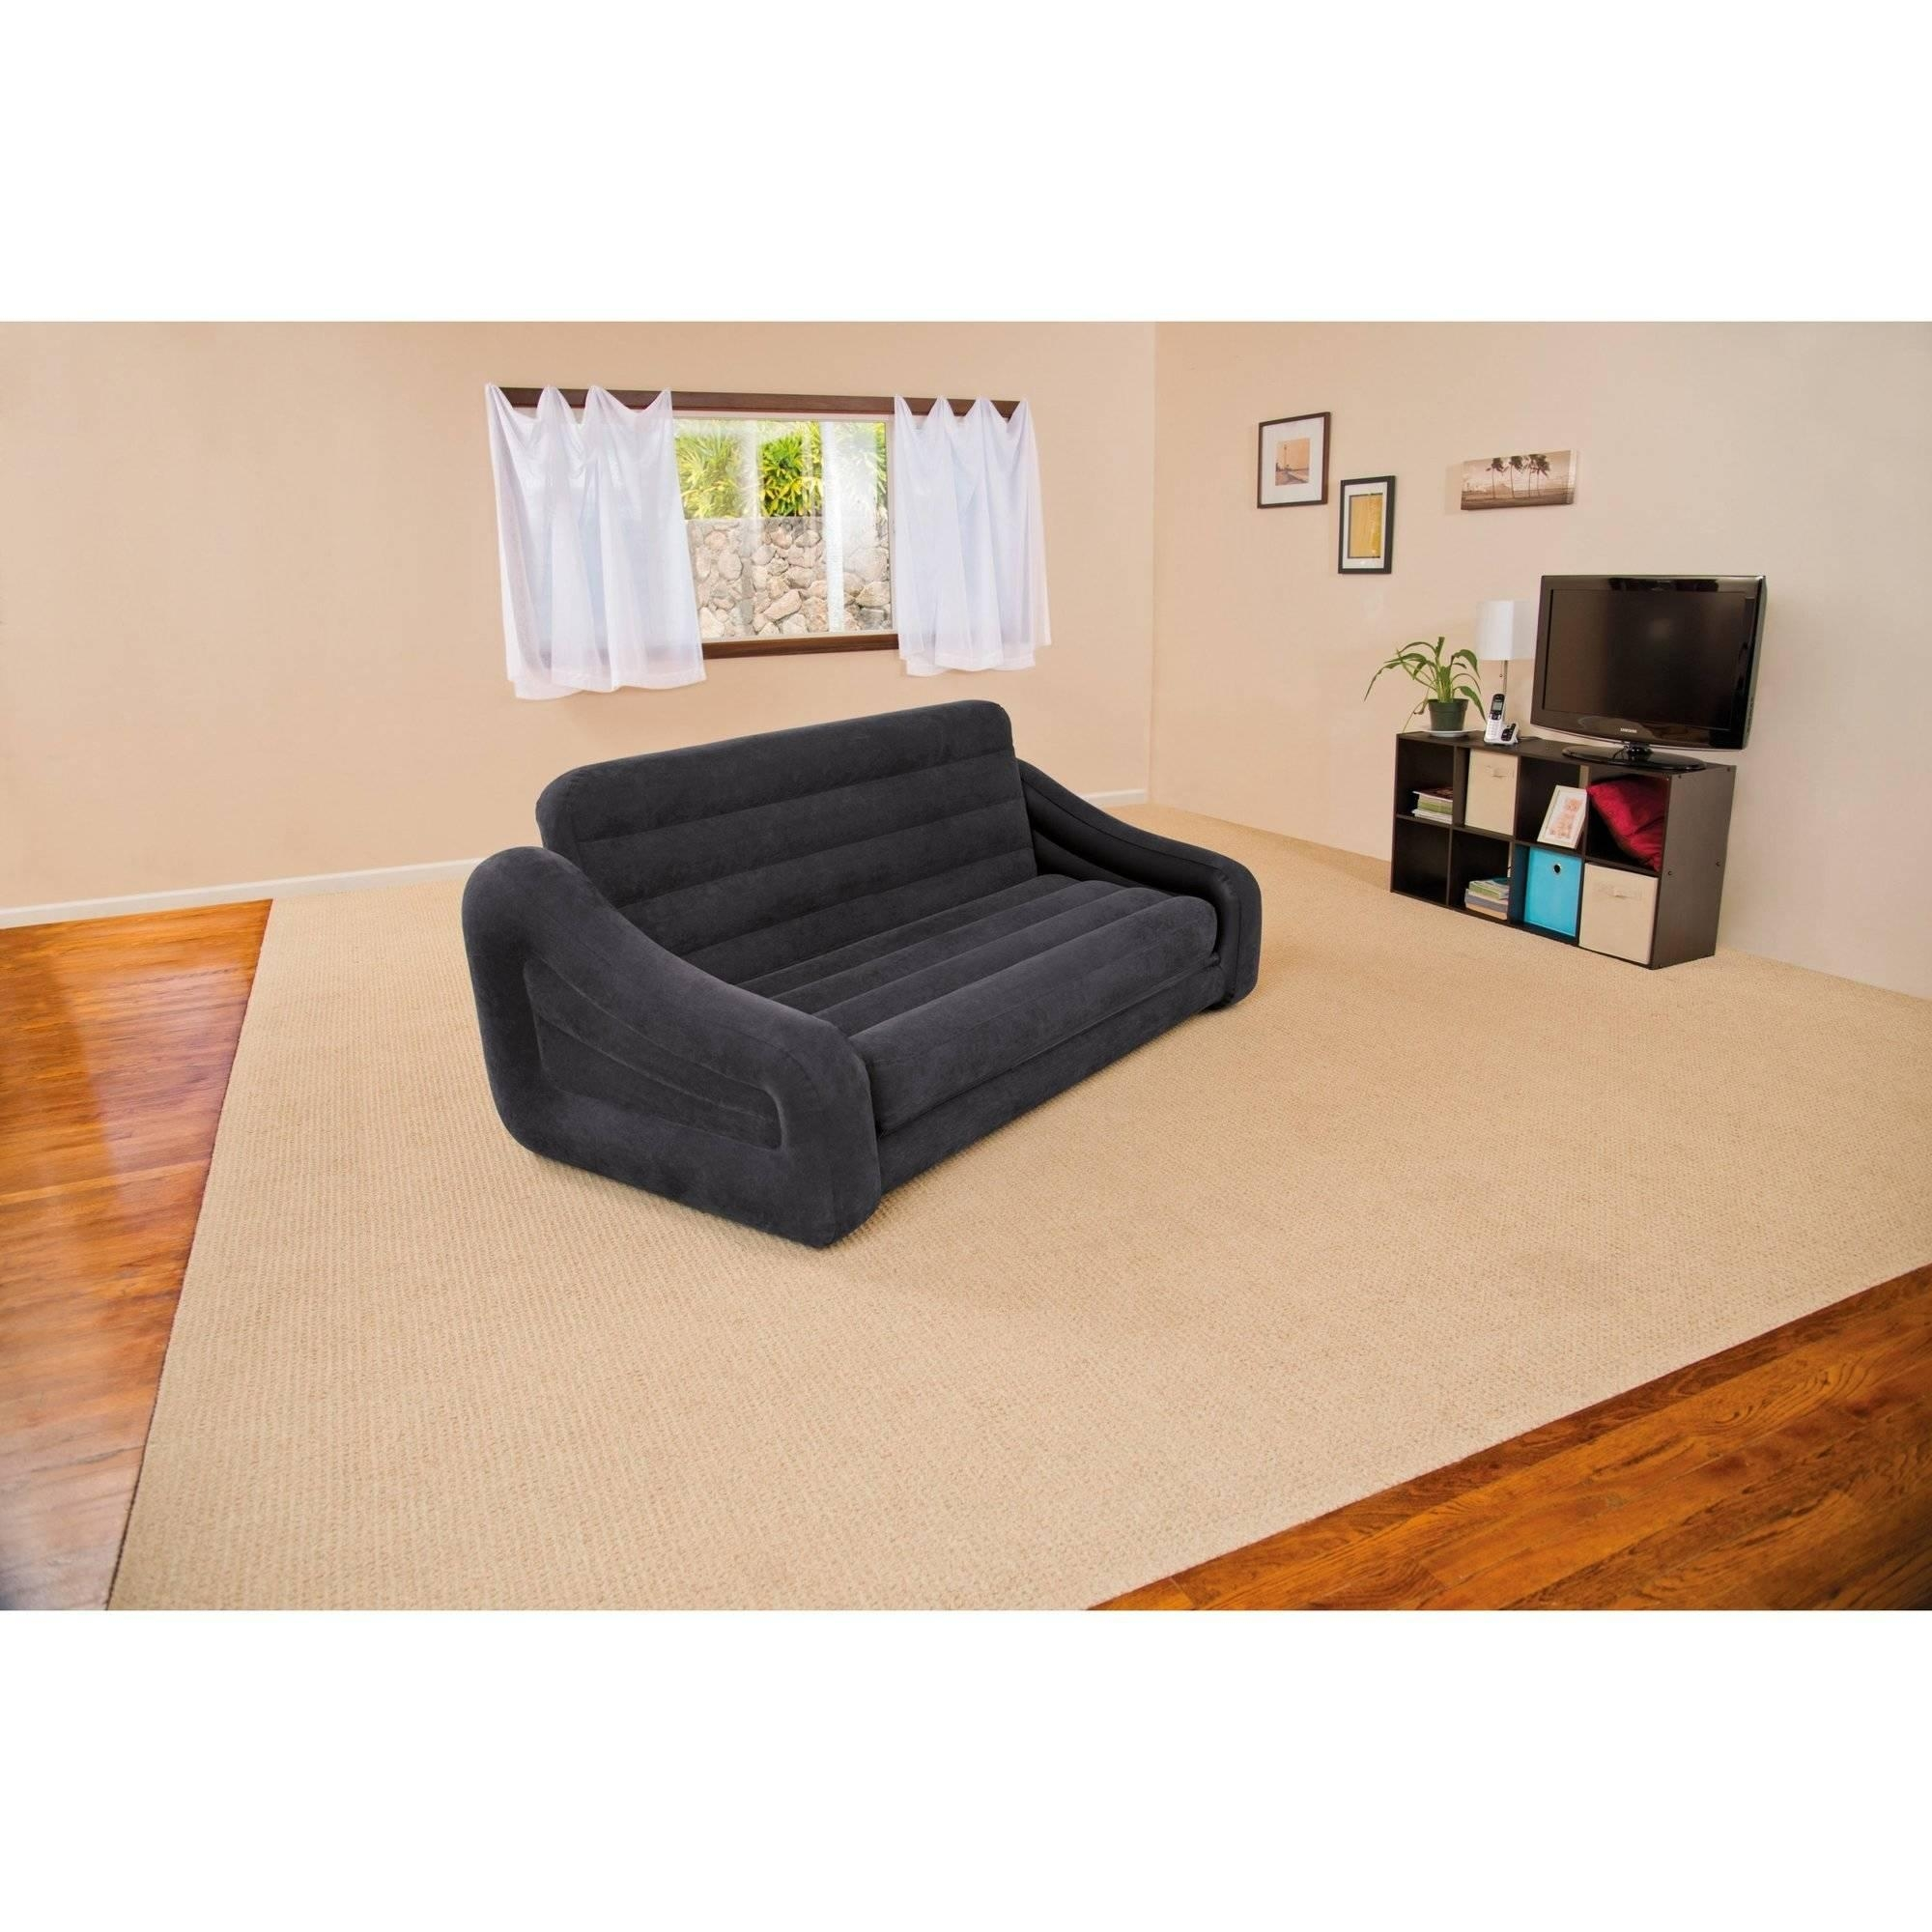 Intex Queen Inflatable Pull Out Sofa Bed – Walmart With Intex Sleep Sofas (View 12 of 20)